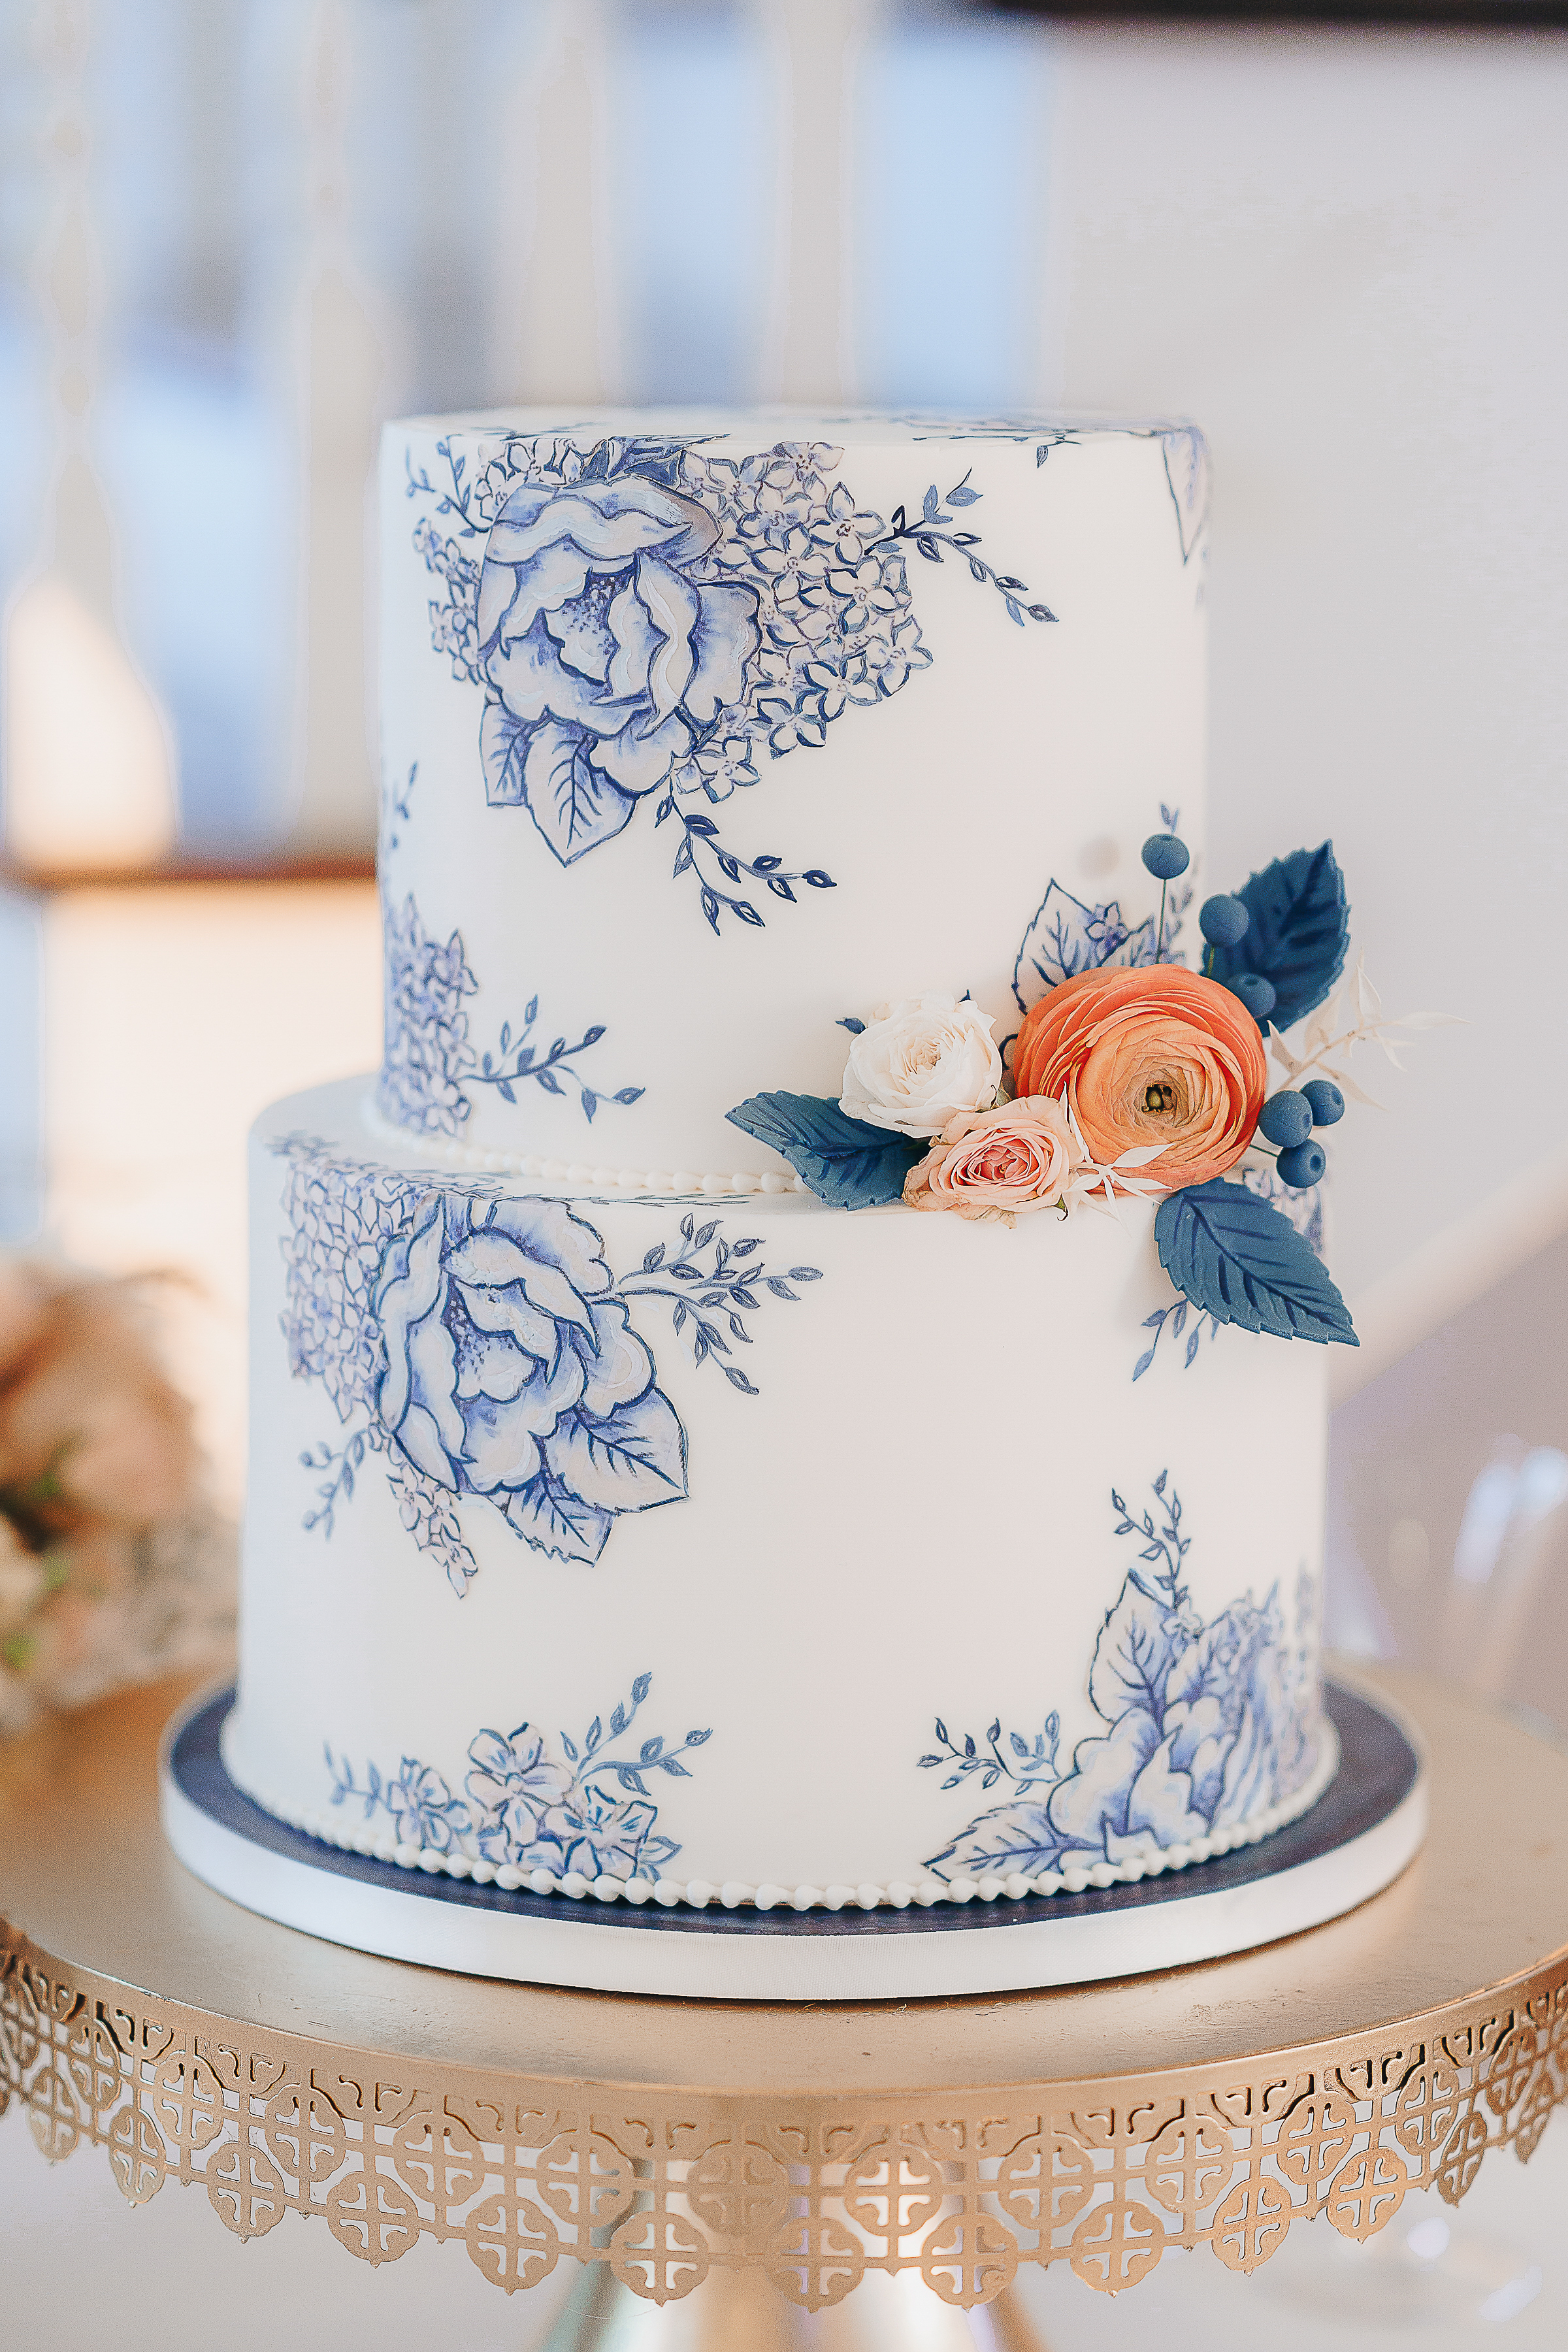 Charming hill country two-tier wedding cake with painted navy flowers atop a gold cake stand.